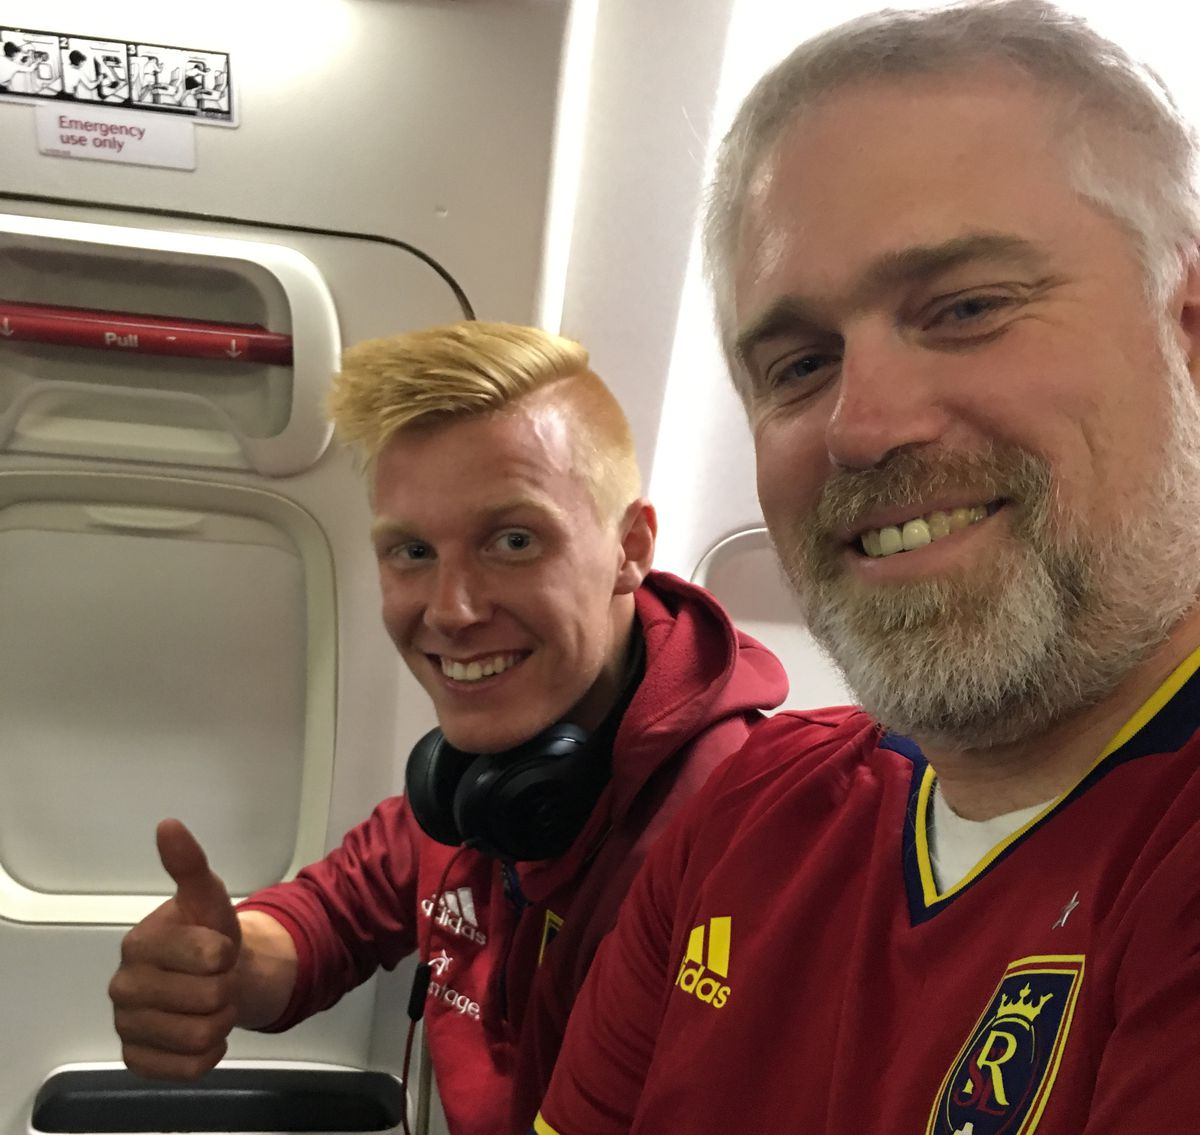 Mike Sanders meets Justen Glad on an airplane leaving NYC